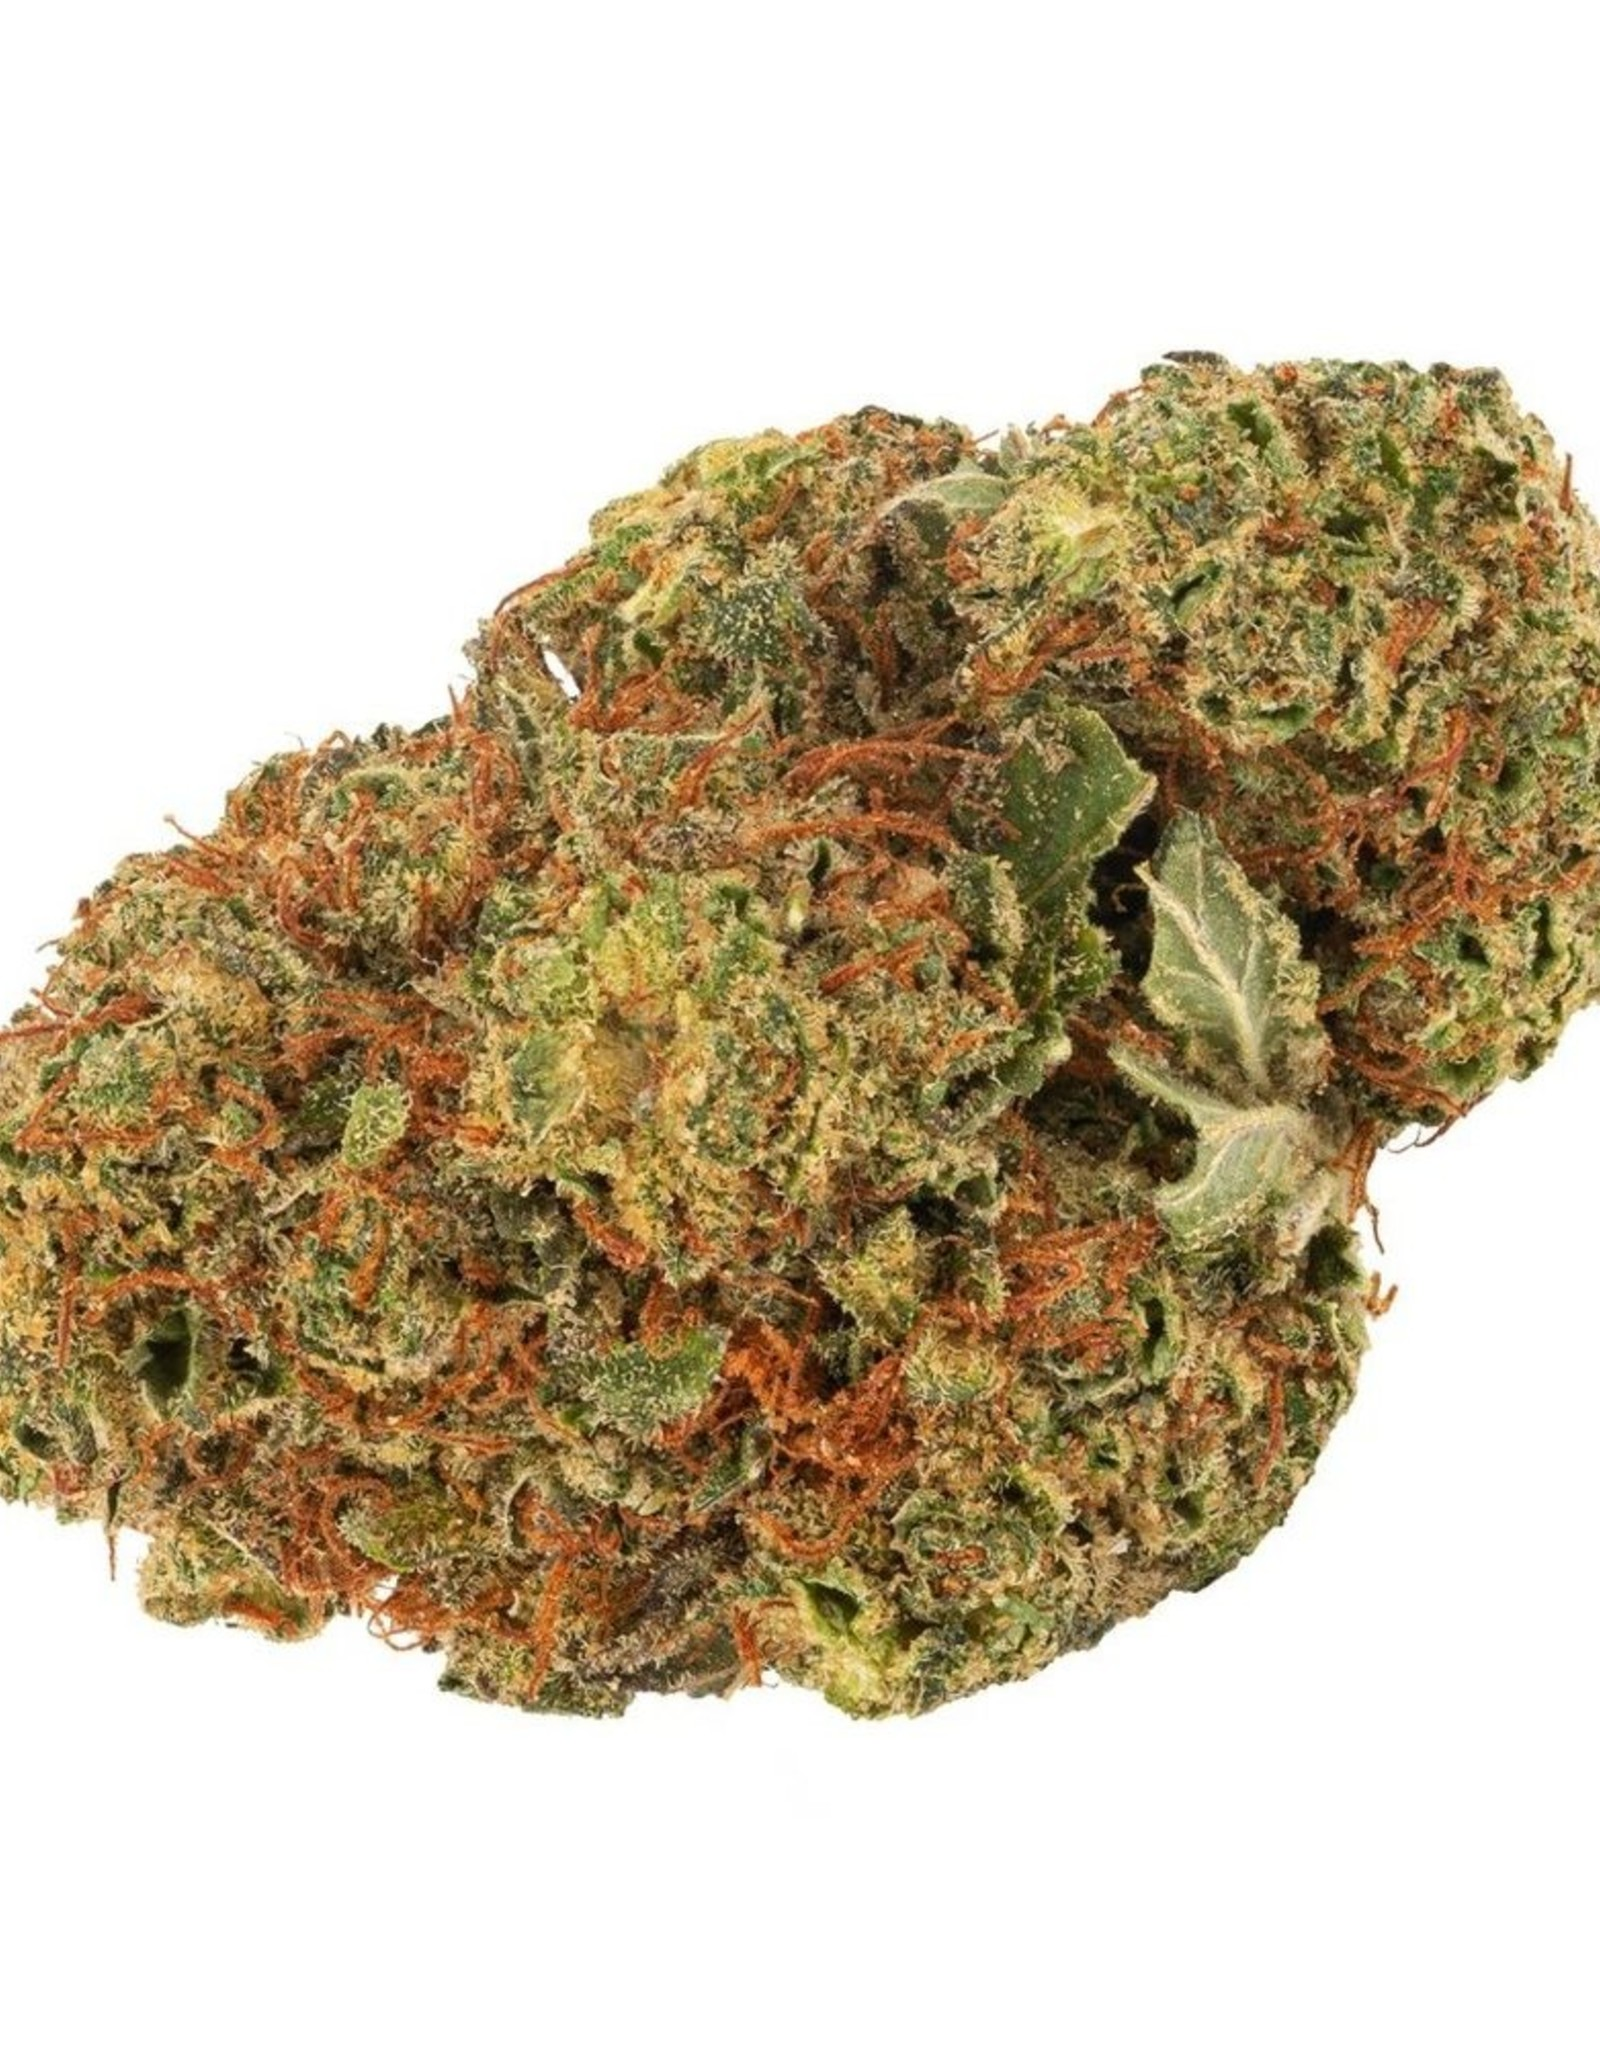 Daily Special Daily Special - Indica 7G